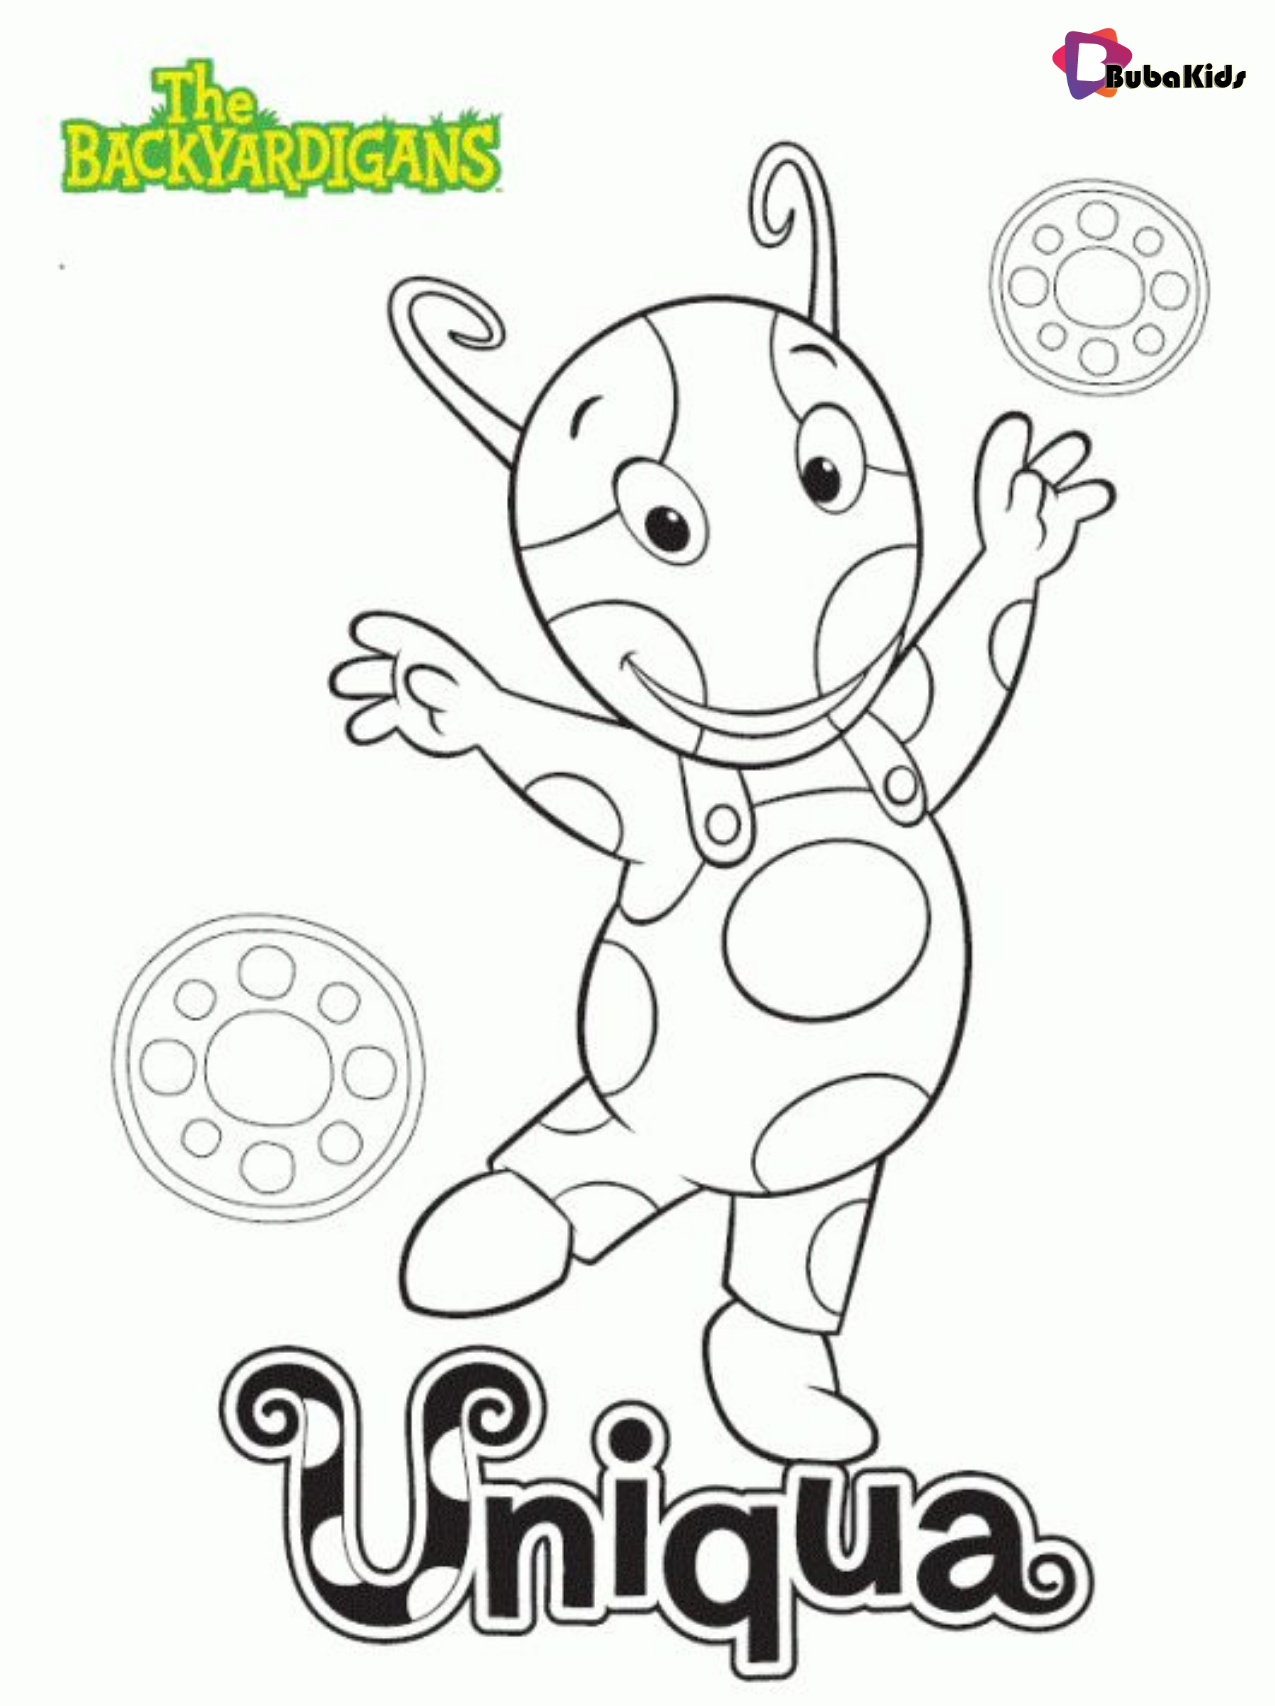 Uniqua From The Backyardigans Printable Coloring Pages Bubakids Com Backyardigans Bu Nick Jr Coloring Pages Cartoon Coloring Pages Printable Coloring Pages